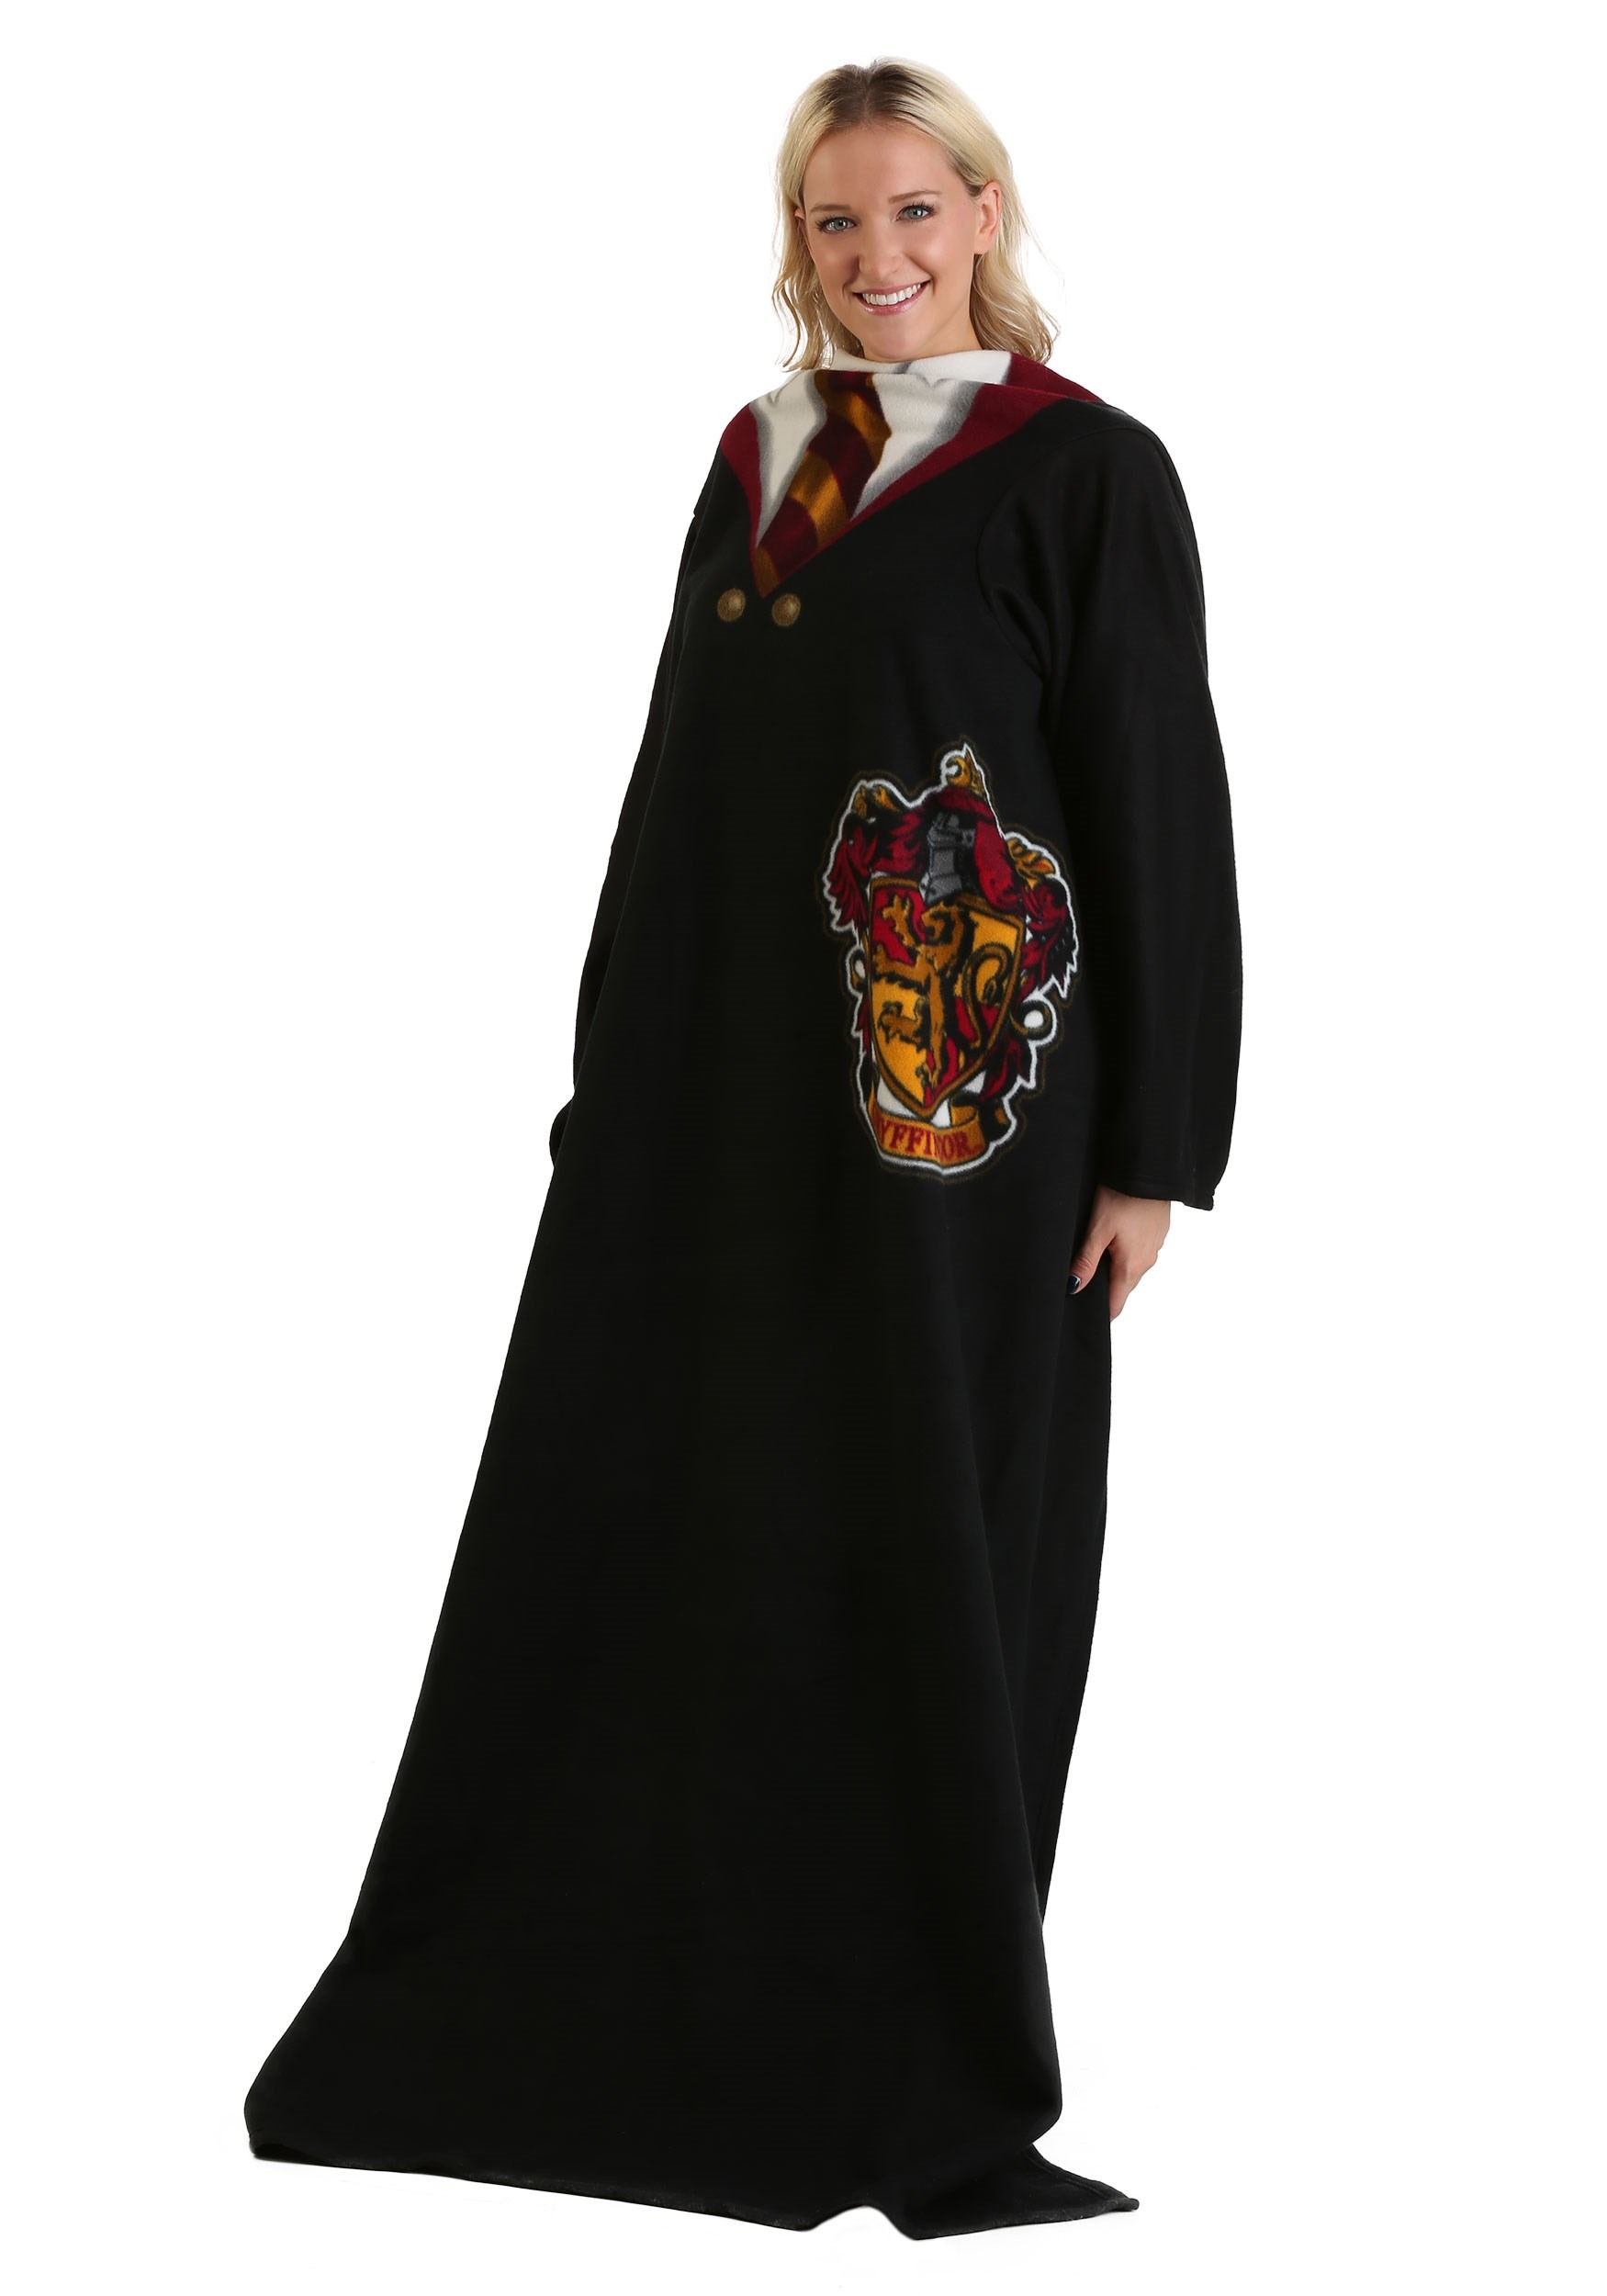 Harry Potter Comfy Throw Gryffindor Robe Blanket For Adults